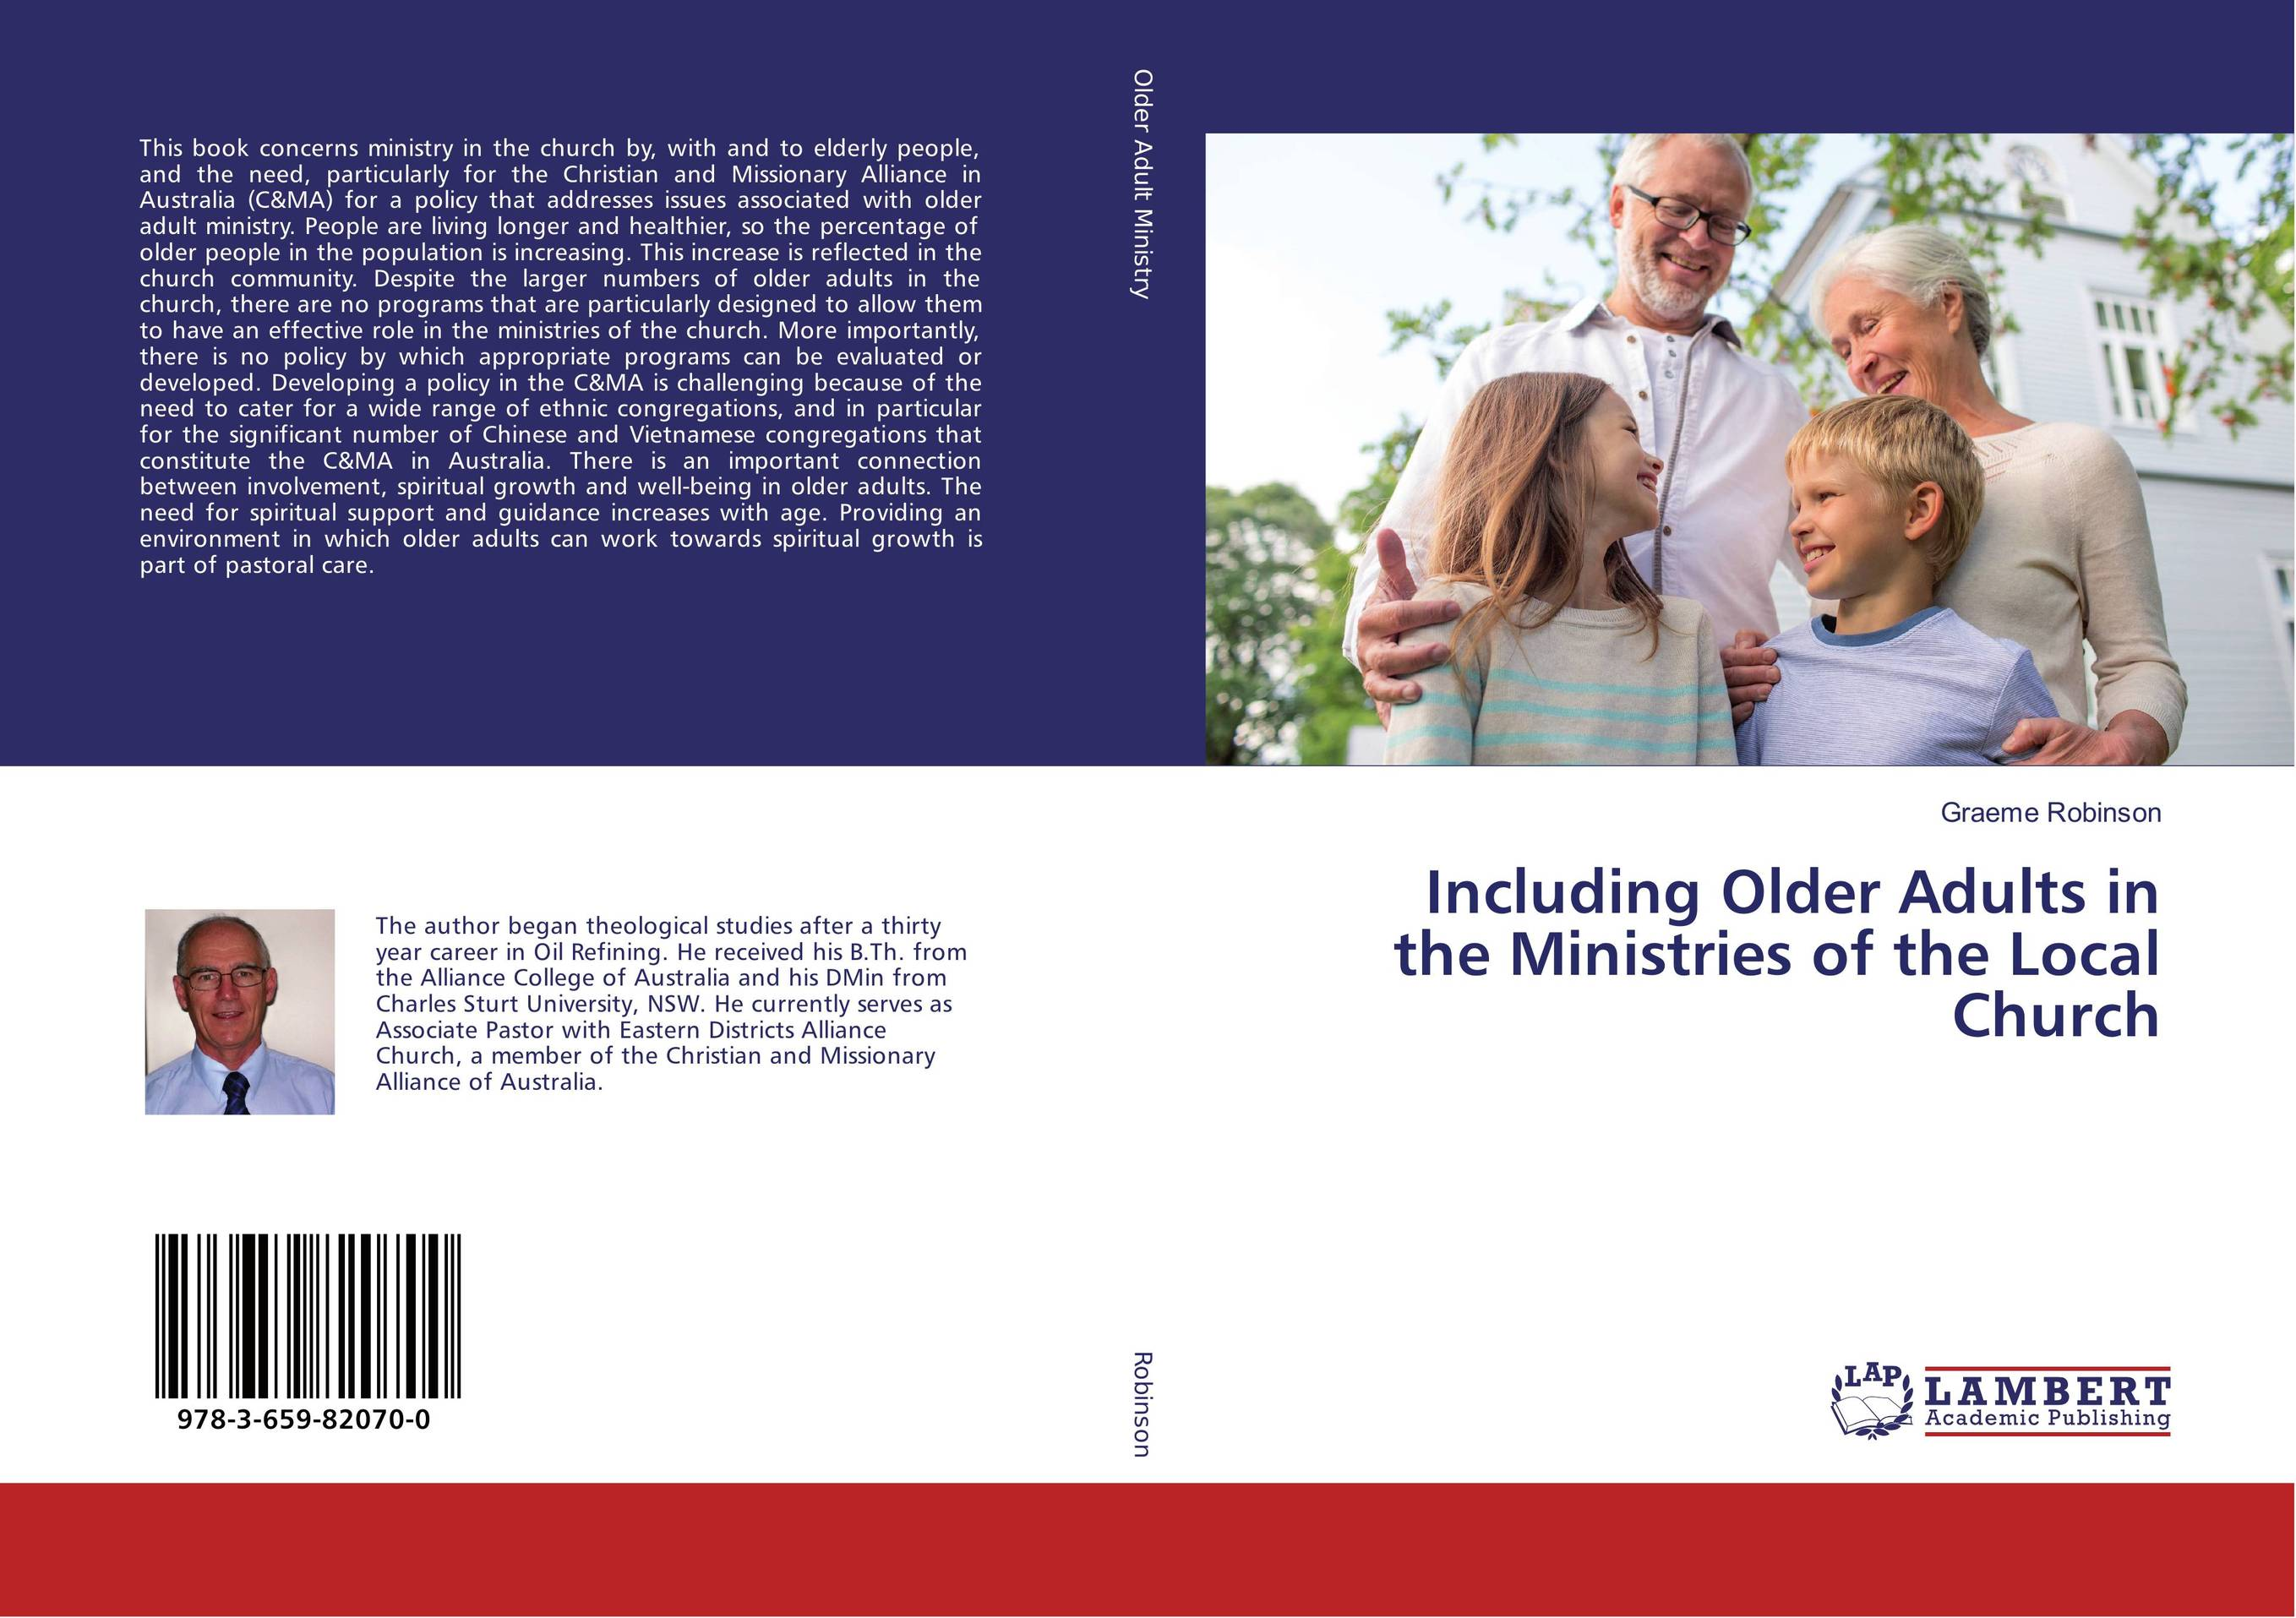 Including Older Adults in the Ministries of the Local Church visuomotor adaptation in older adults with and without mci